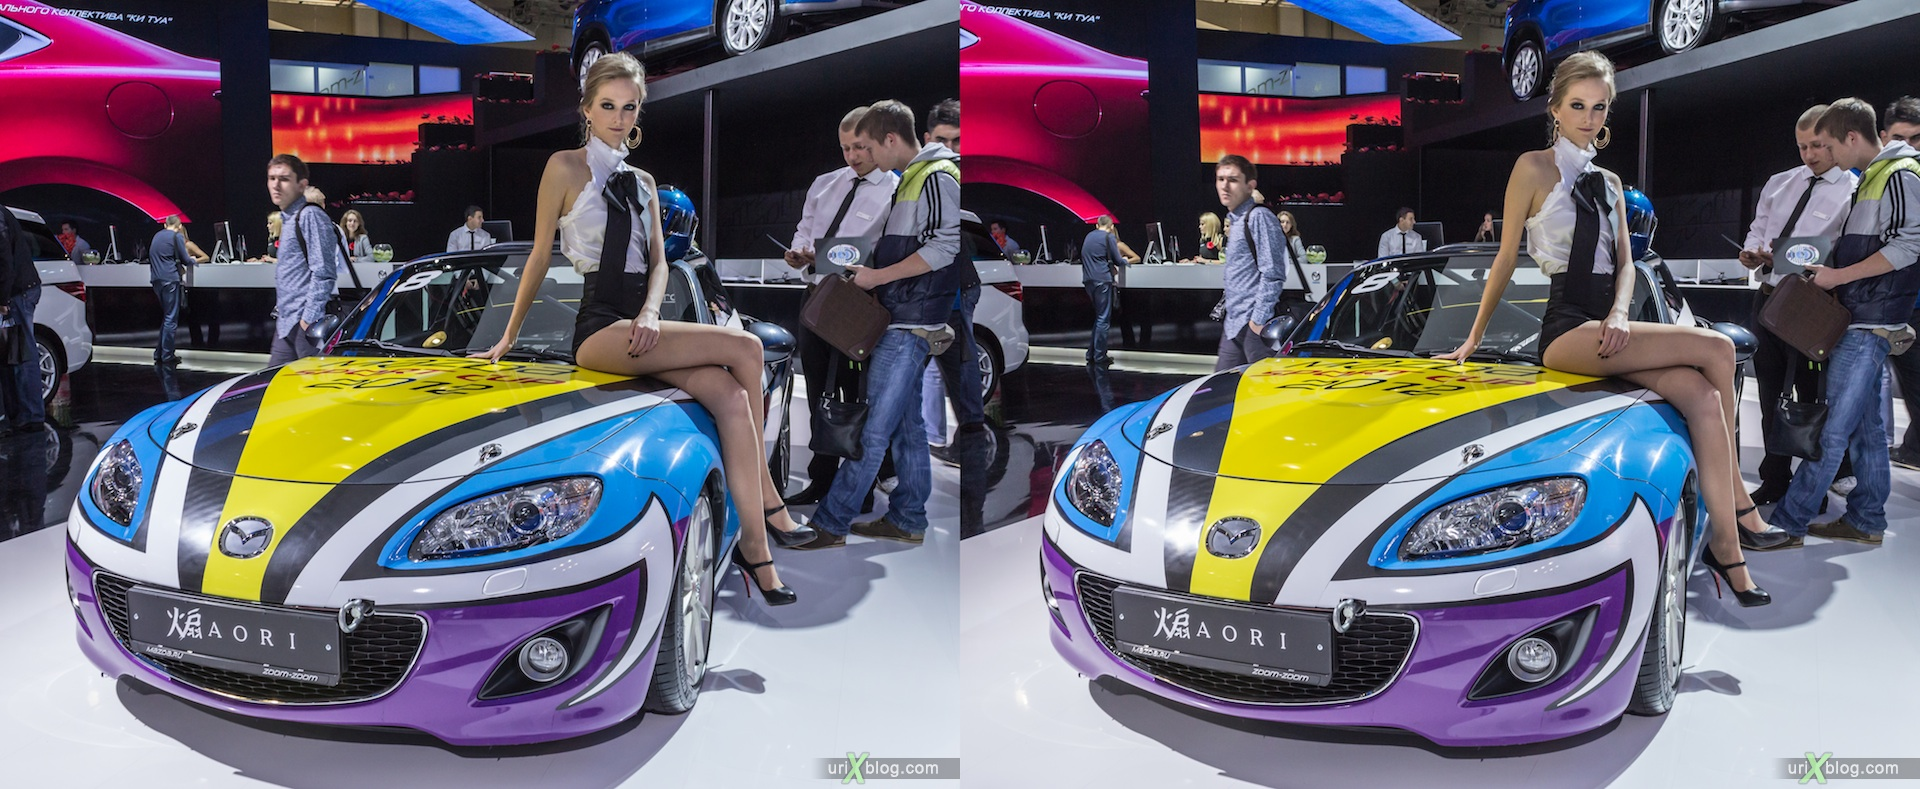 2012, Mazda AORI, девушка, модель, girl, model, Moscow International Automobile Salon, auto show, 3D, stereo pair, cross-eyed, crossview